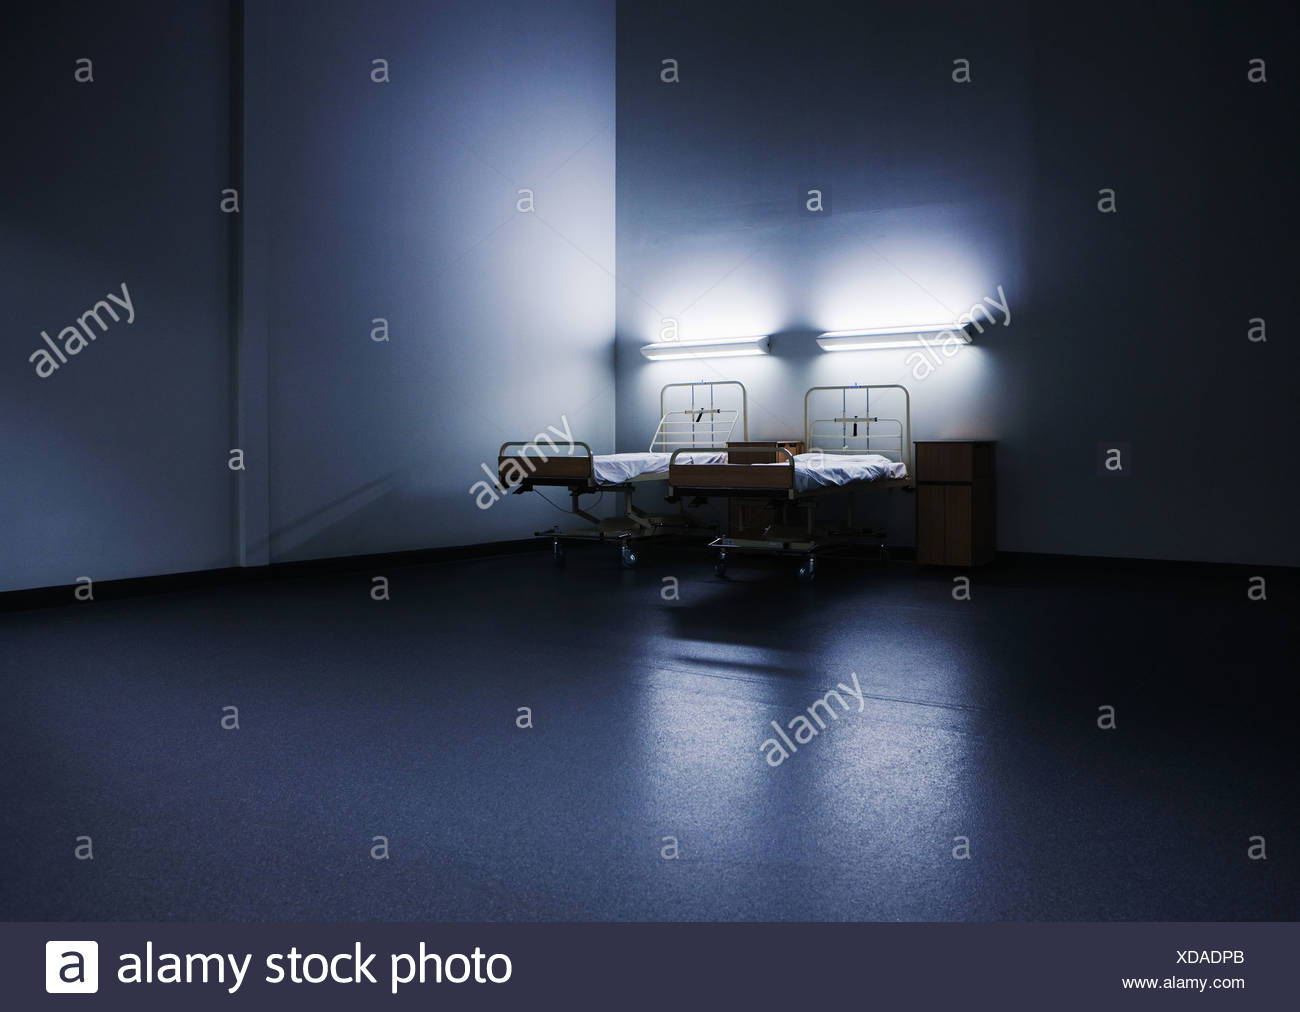 Two empty hospital beds - Stock Image